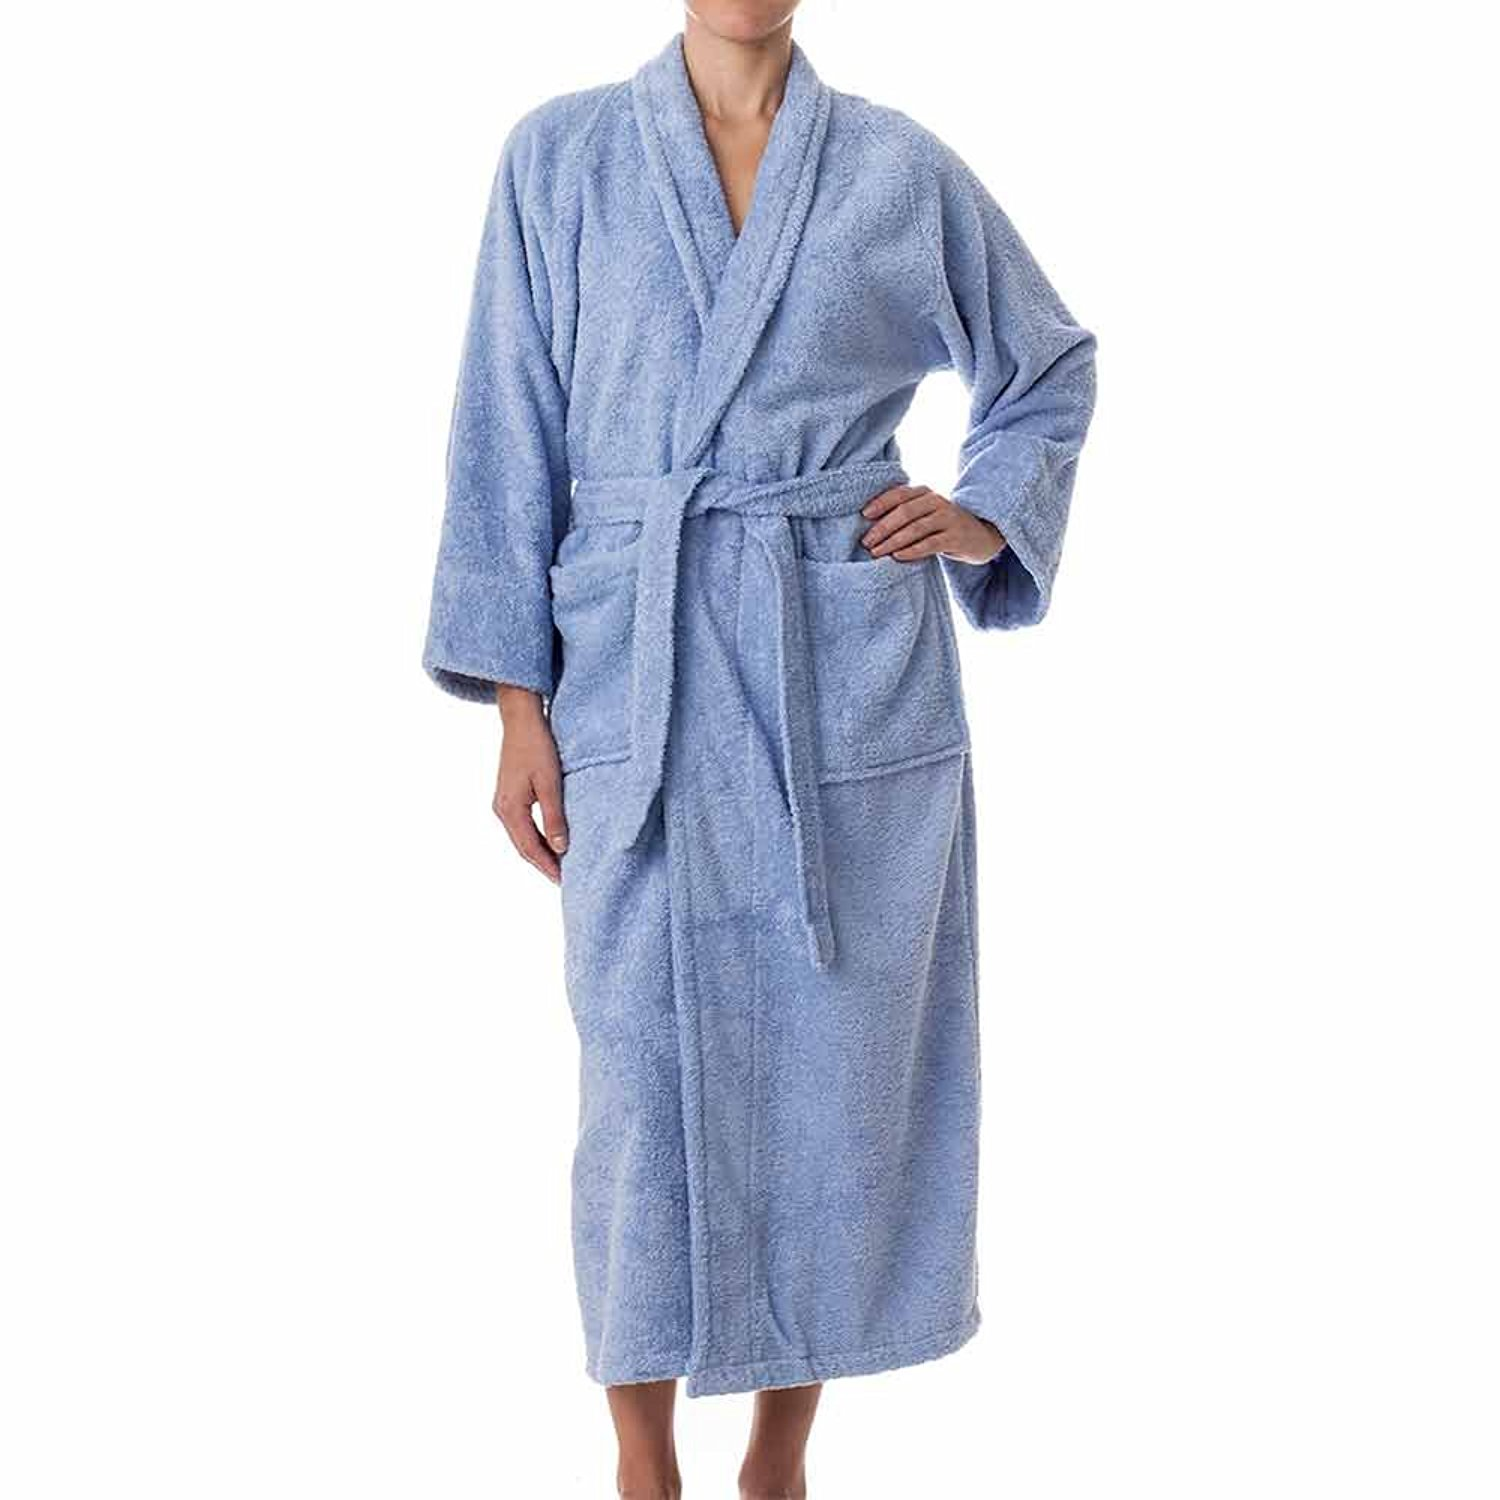 08dcf86a1d Get Quotations · eLuxurySupply Unisex Terry Cloth Bathrobe- 100% Long  Staple Cotton Hotel Spa Robes -